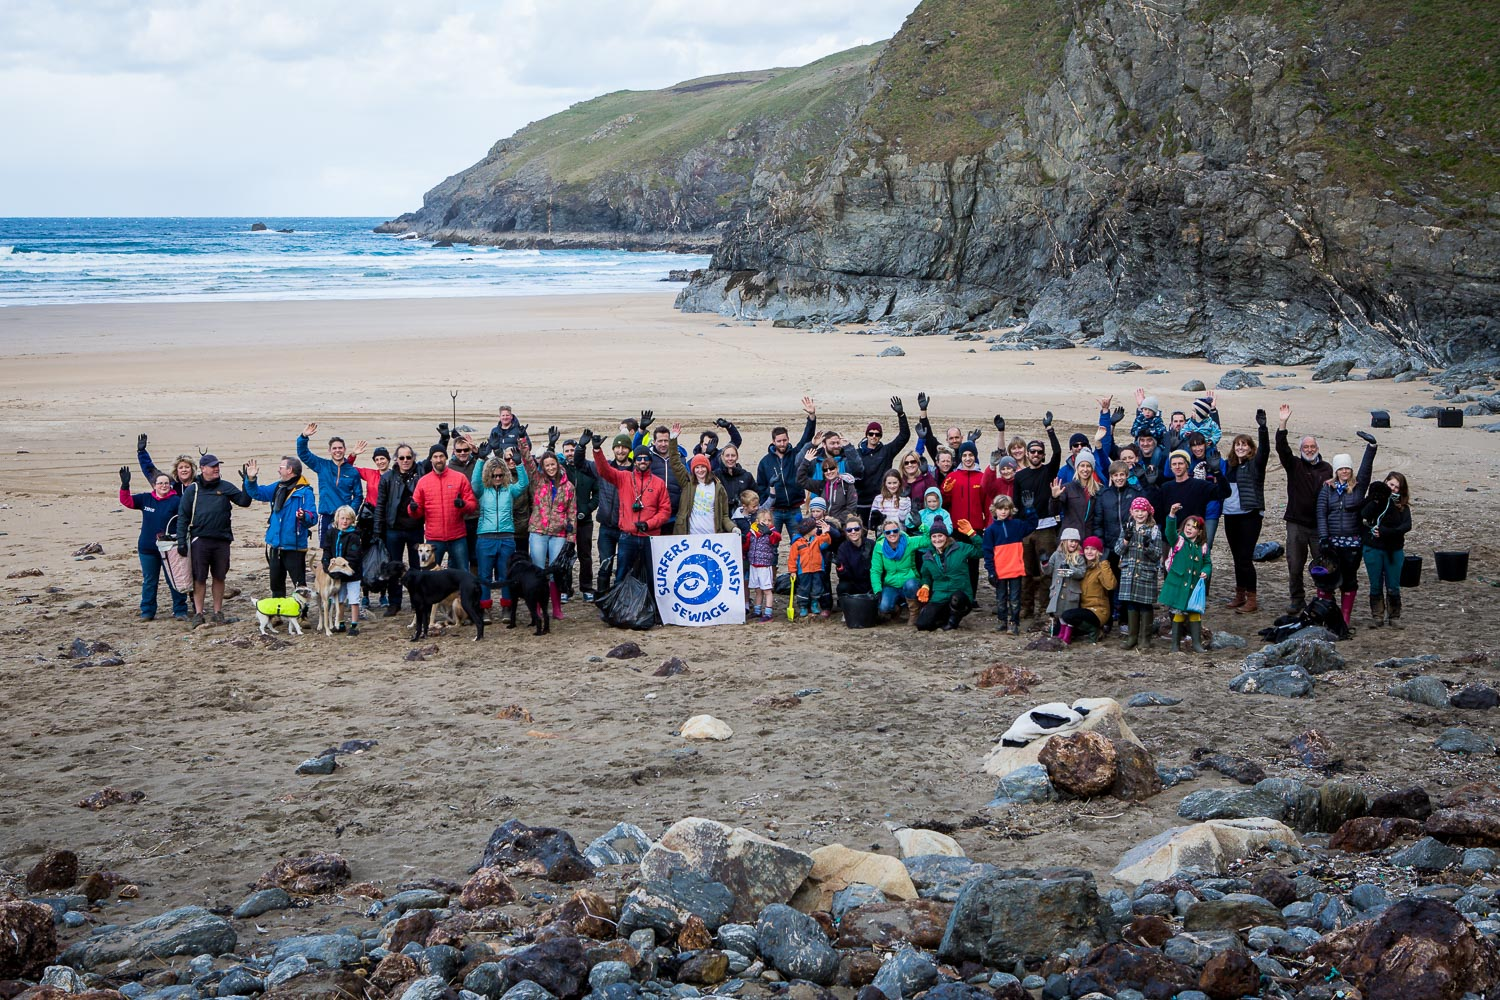 Community Beach Cleans and Volunteering